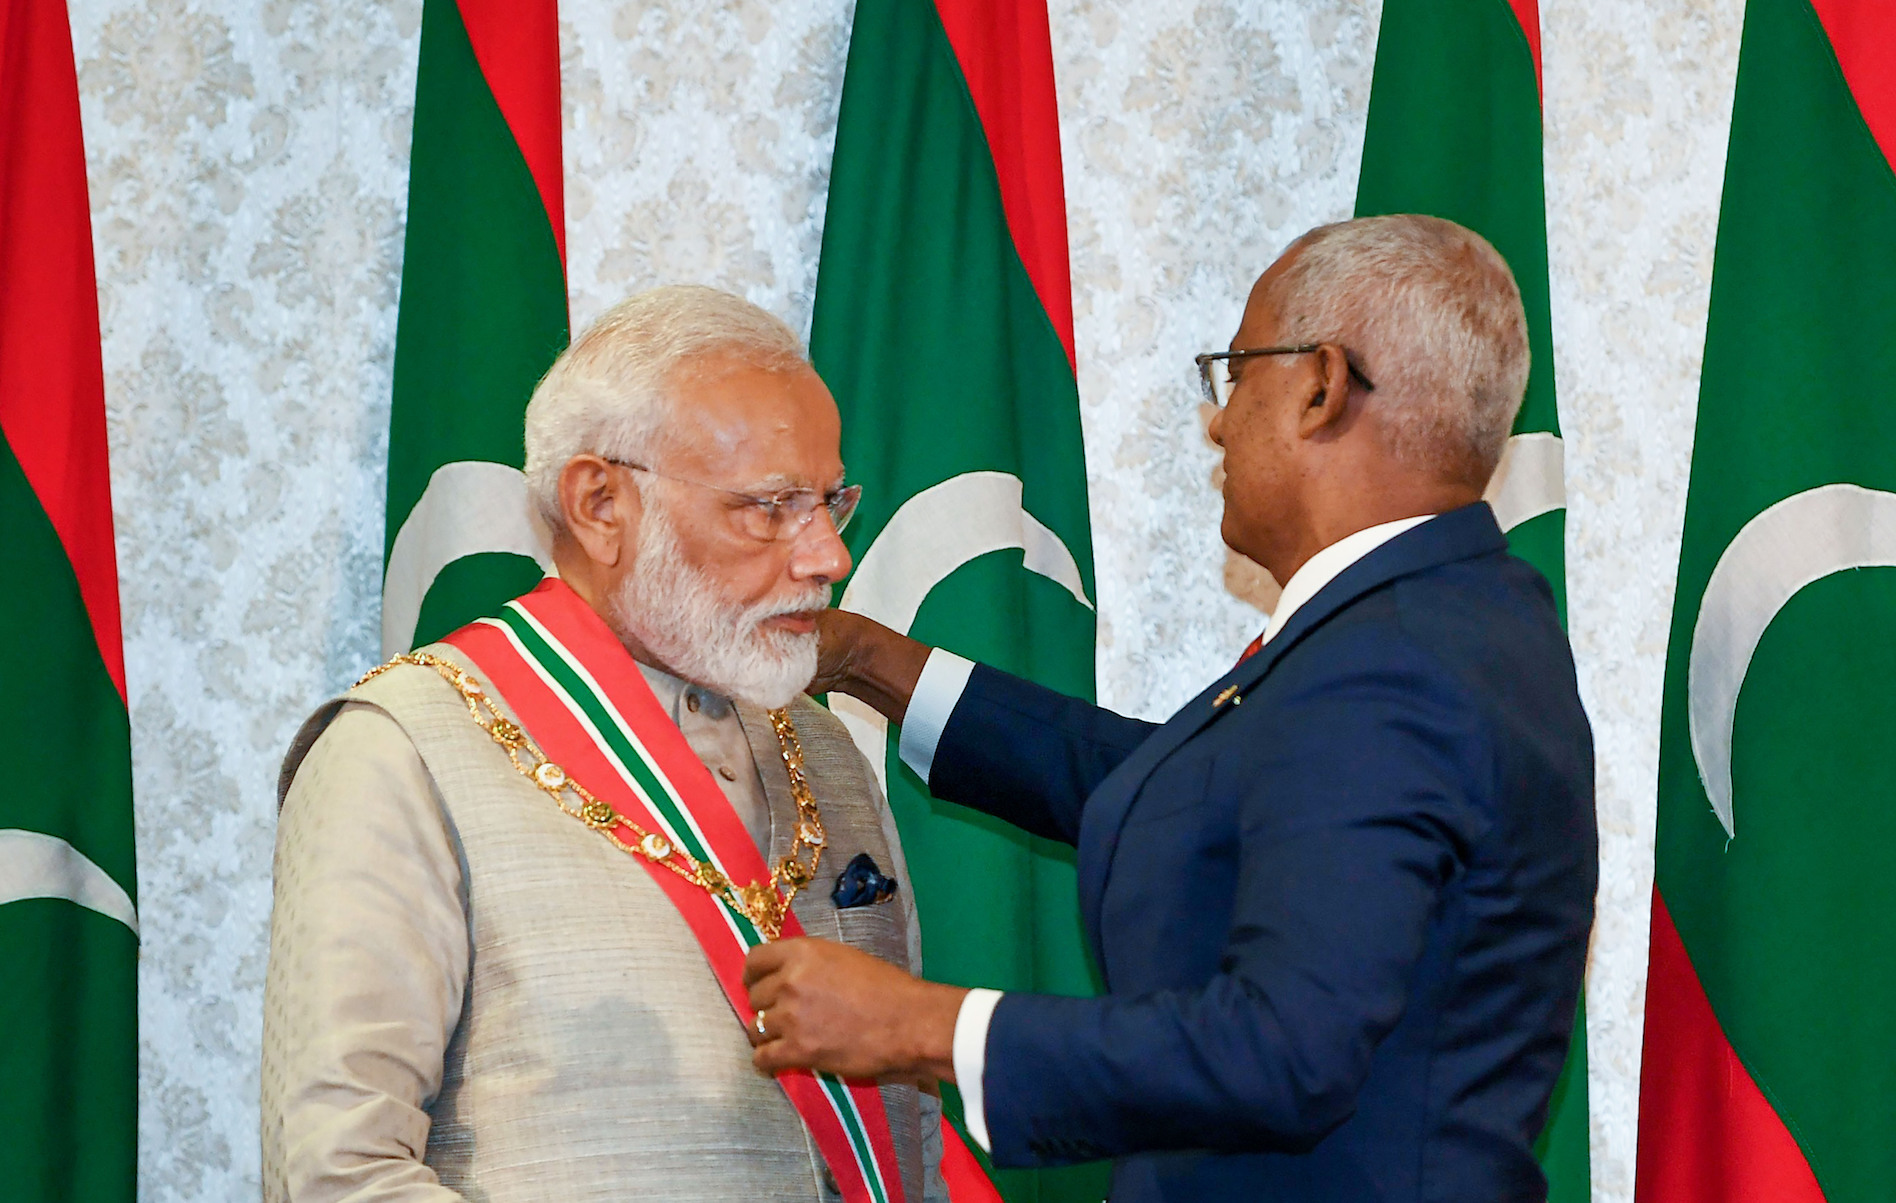 Prime minister Narendra Modi arrived in Colombo on Sunday after a visit to the Maldives. He received the Maldives' highest honour, the Order of the Distinguished Rule of Nishan Izzuddeen, from Maldives' President Ibrahim Mohamed Solih in Male on Saturday, June 8, 2019.